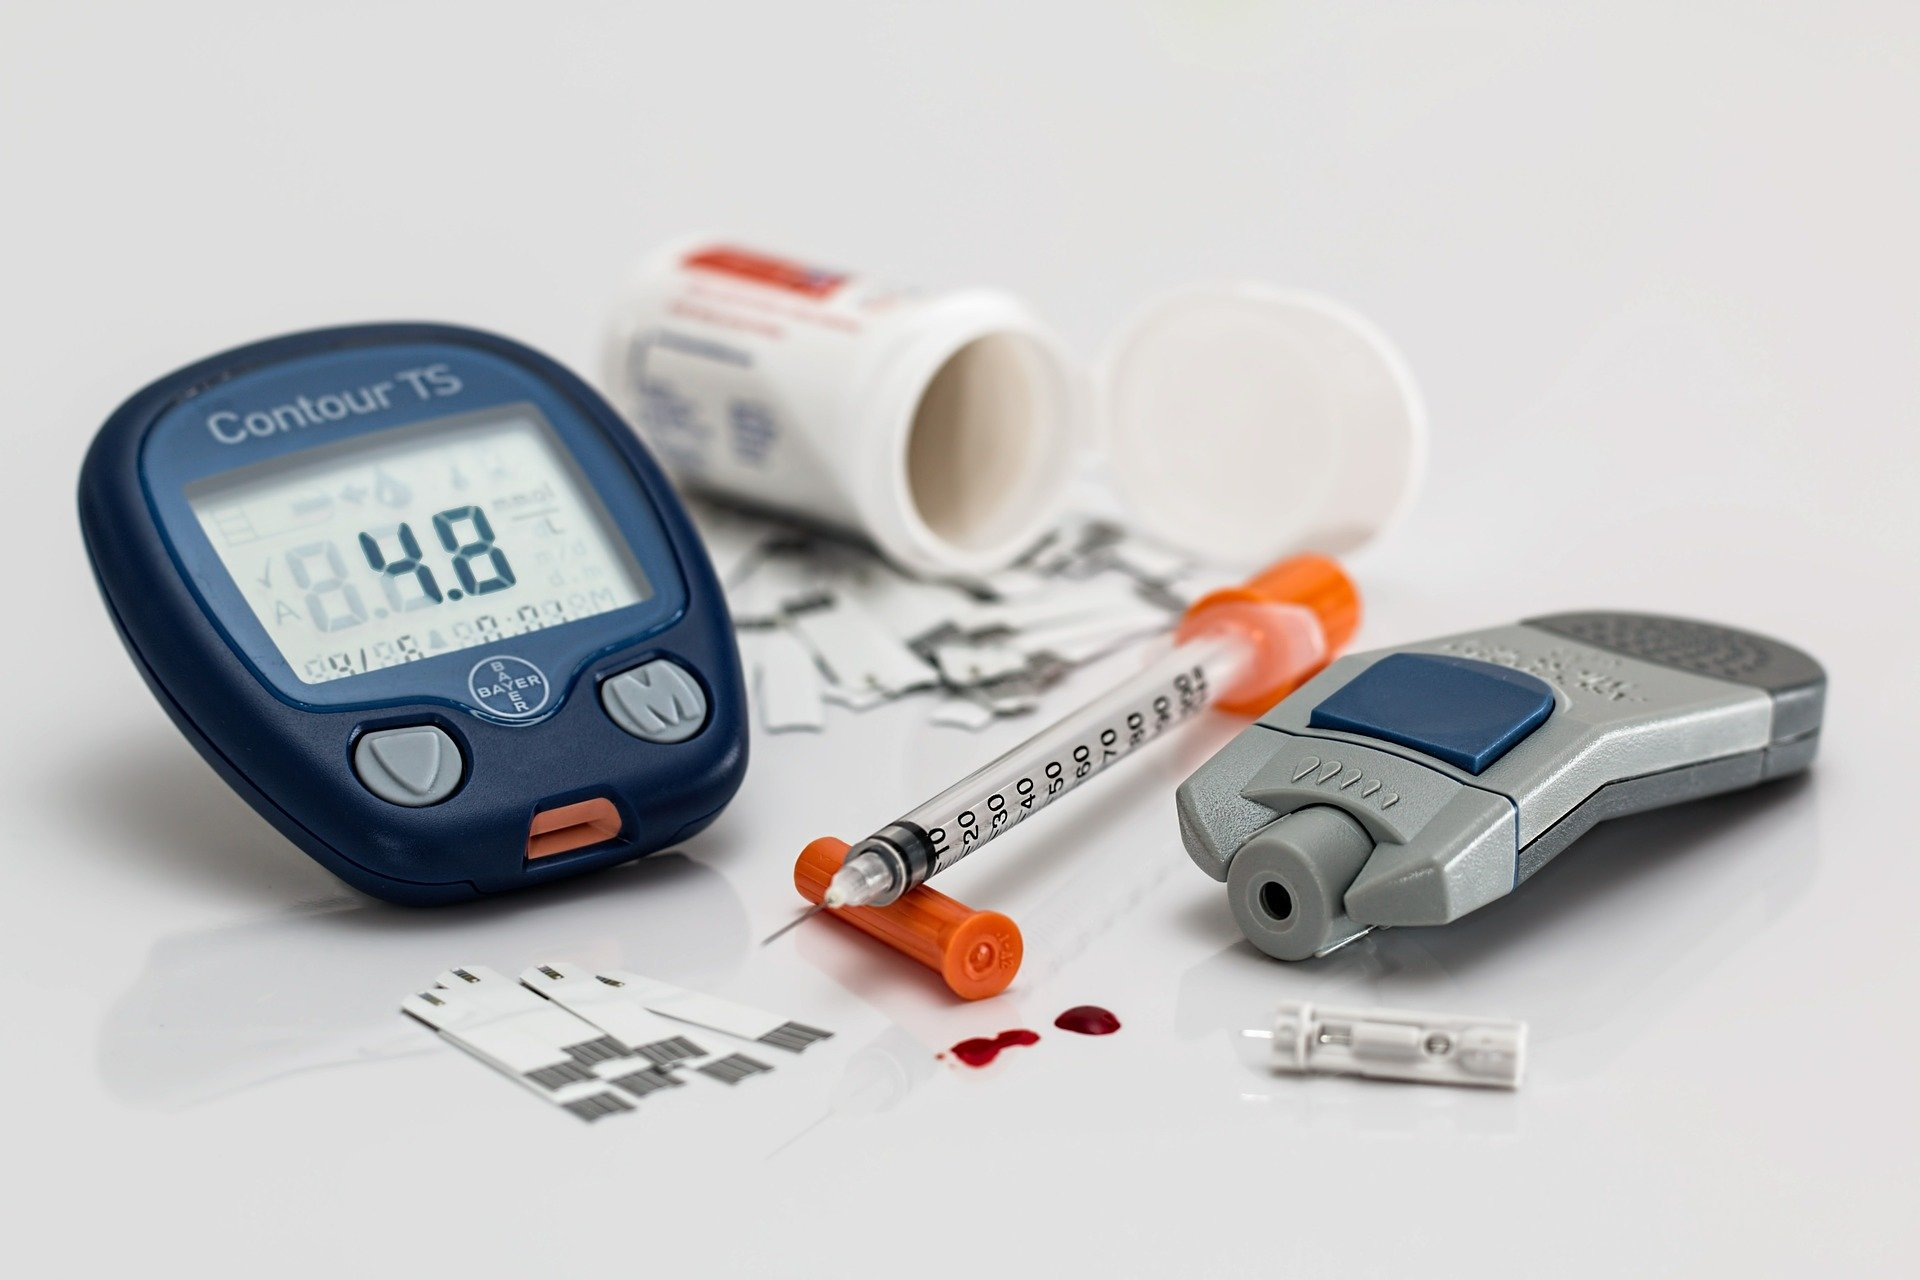 Researchers have found that incidence of heart failure was around two-fold higher in people with diabetes